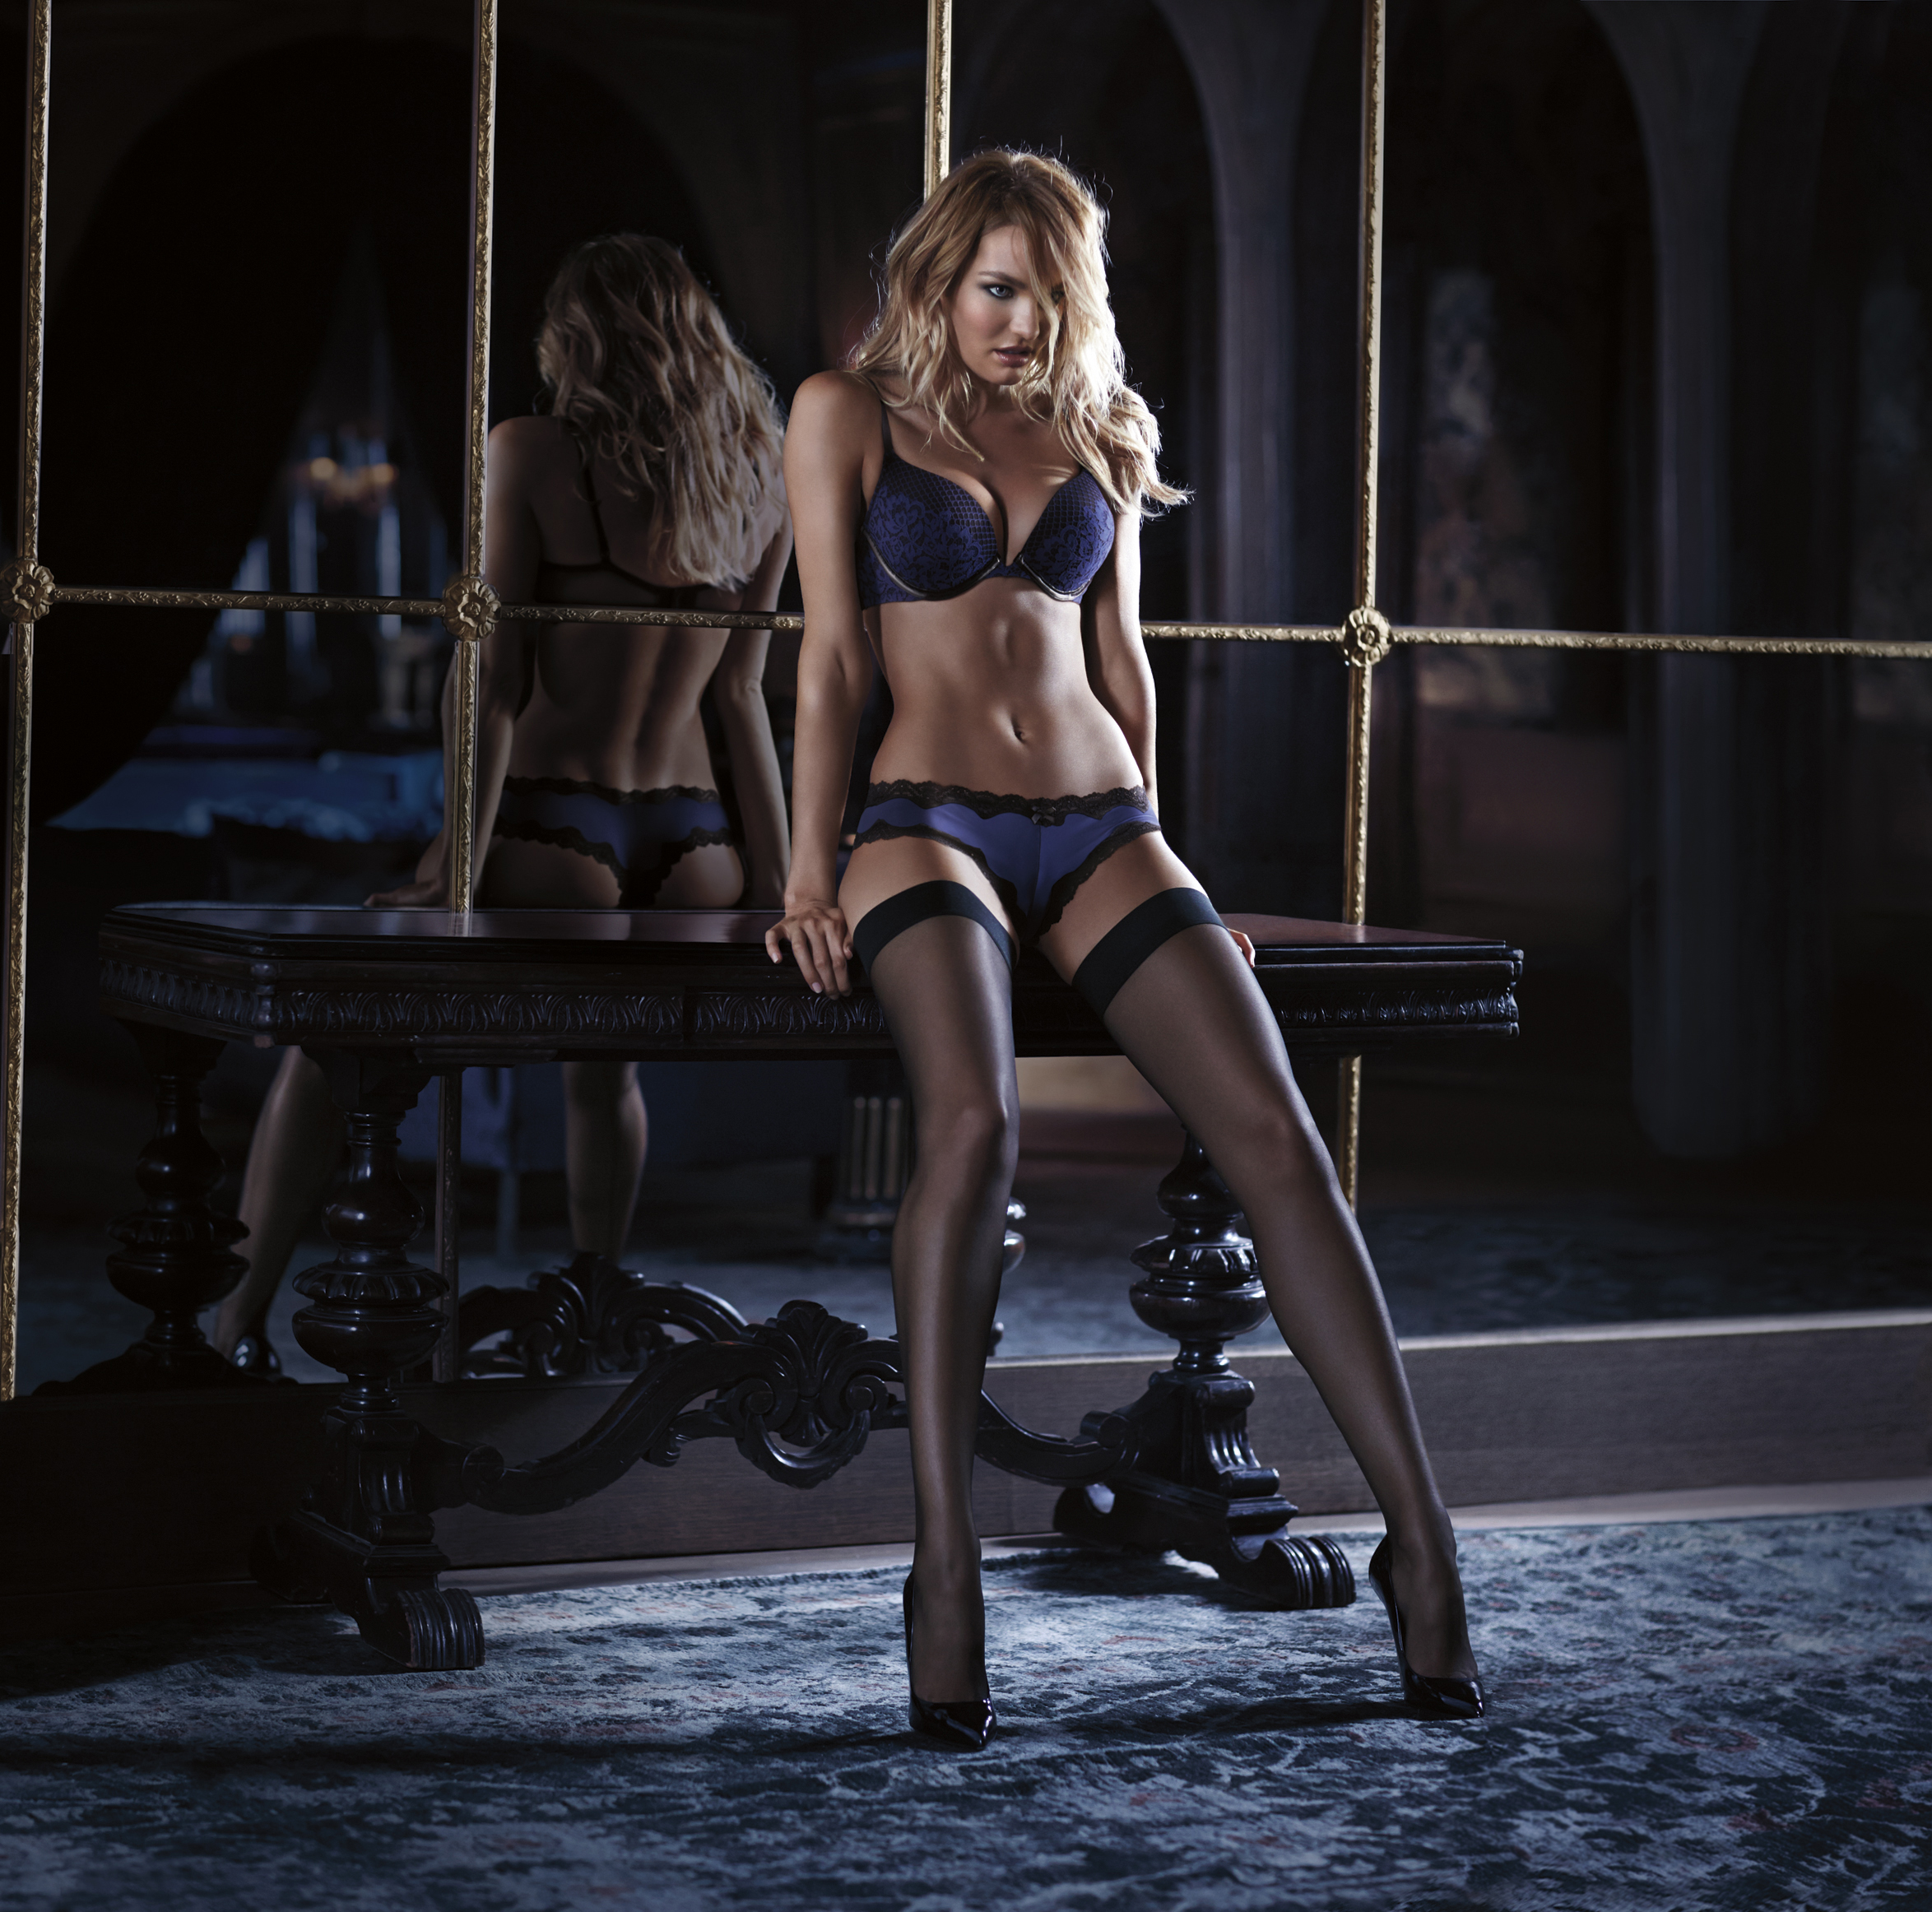 VS-Scandalous-Holiday2015_01